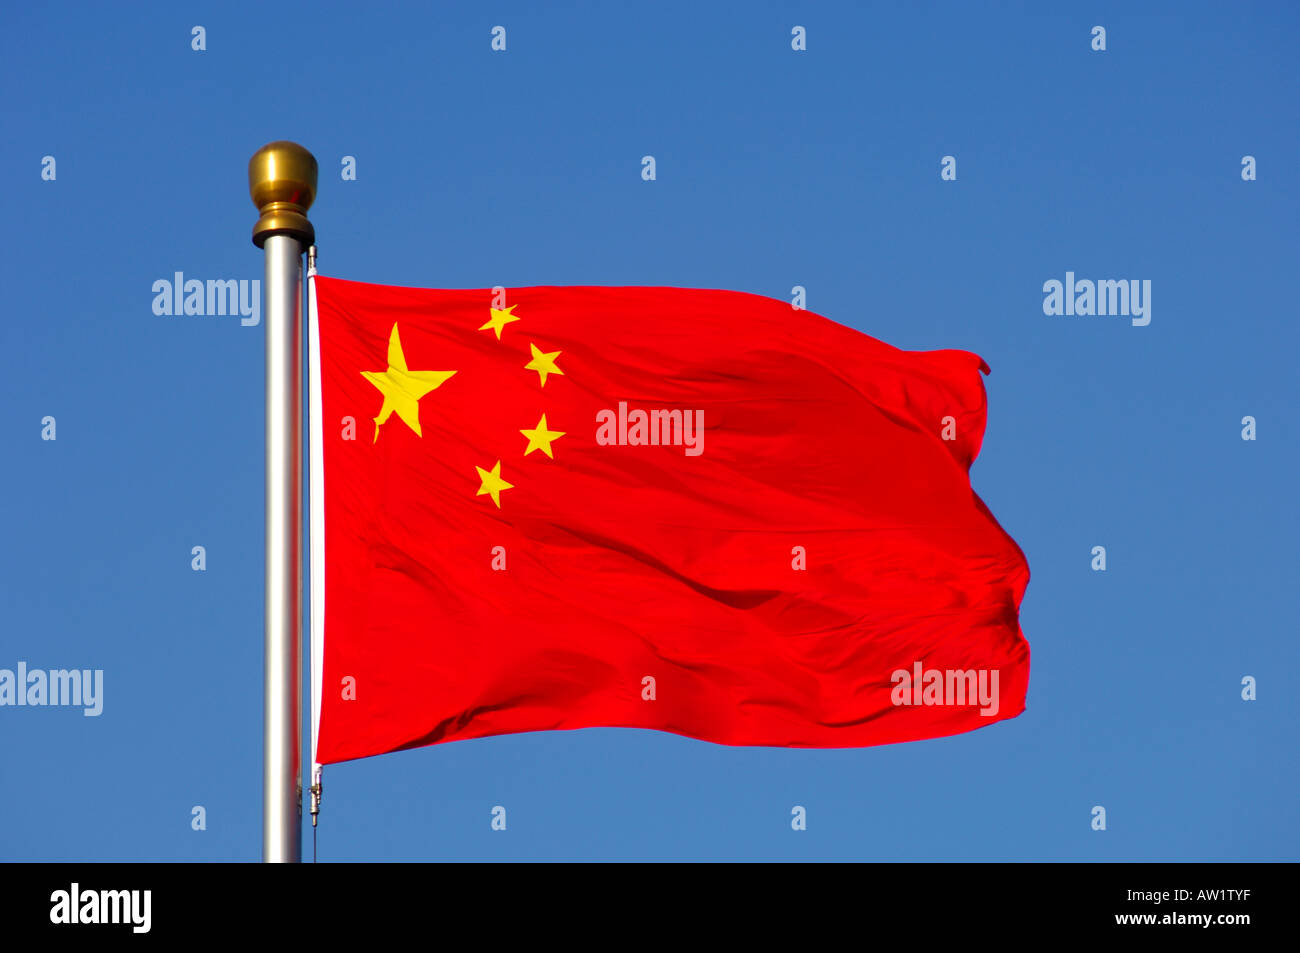 Flag of the Peoples' Republic of China, Beijing China - Stock Image